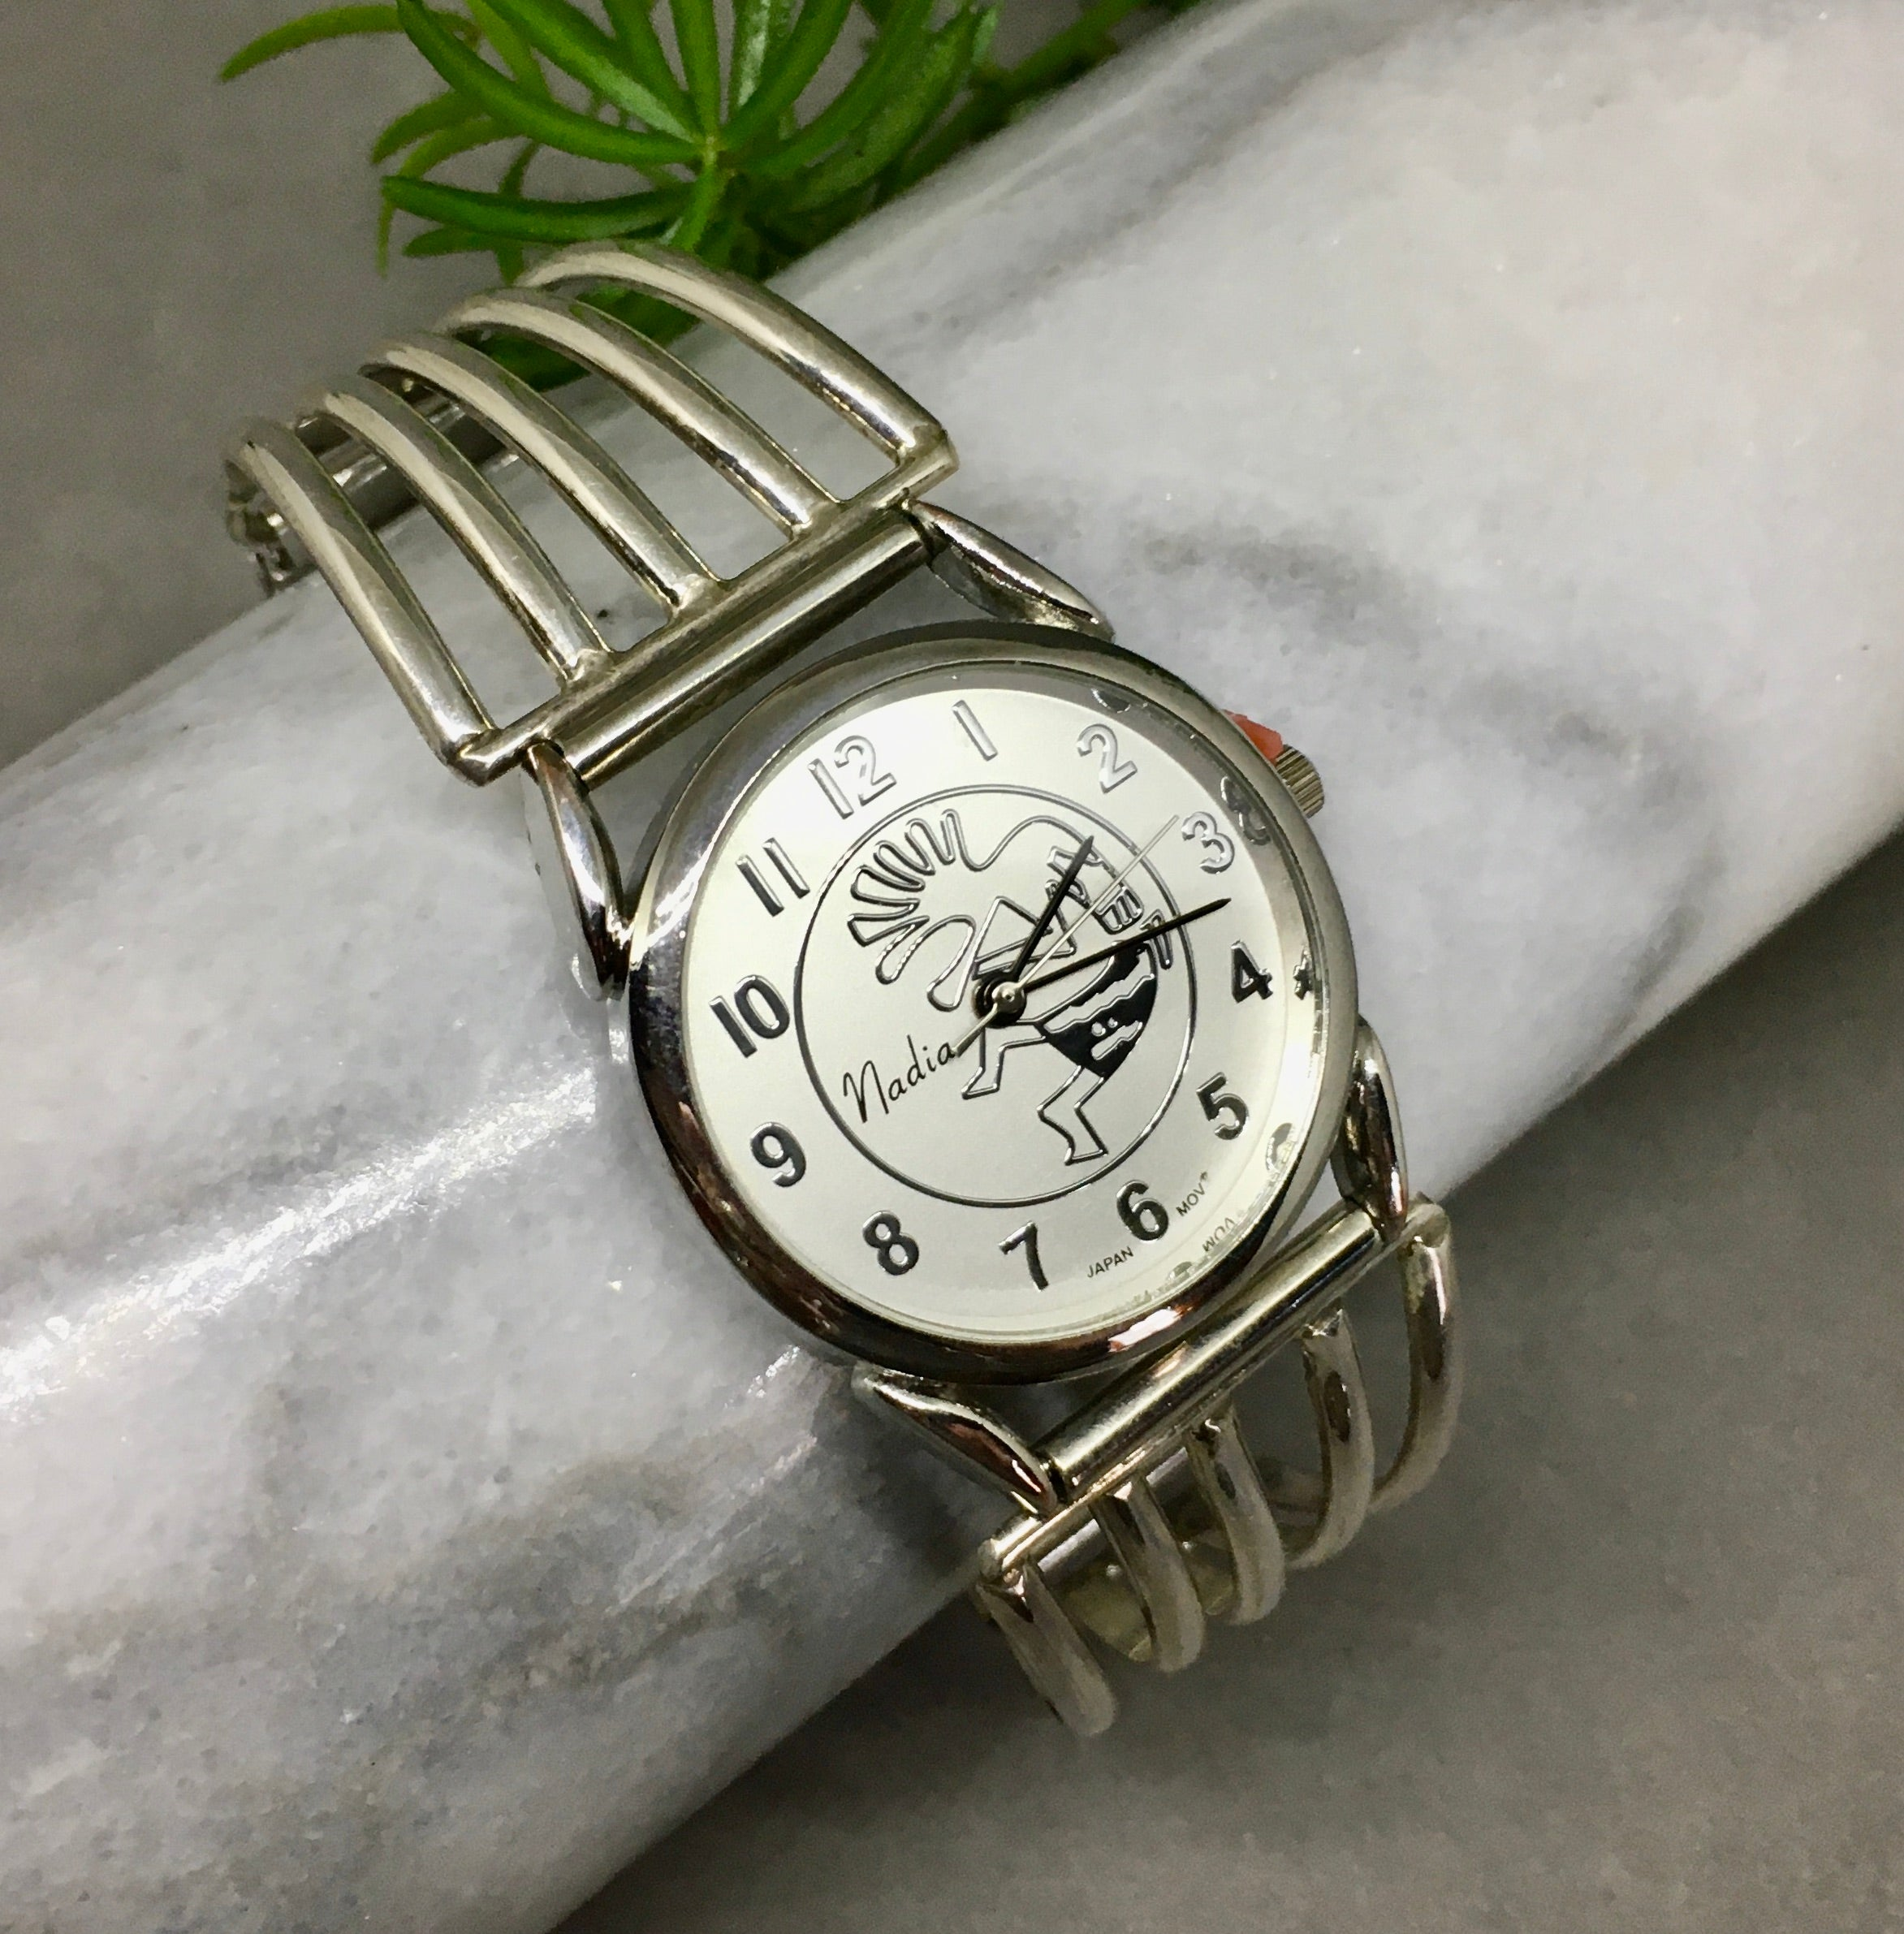 FIVE ARC SILVER WATCH